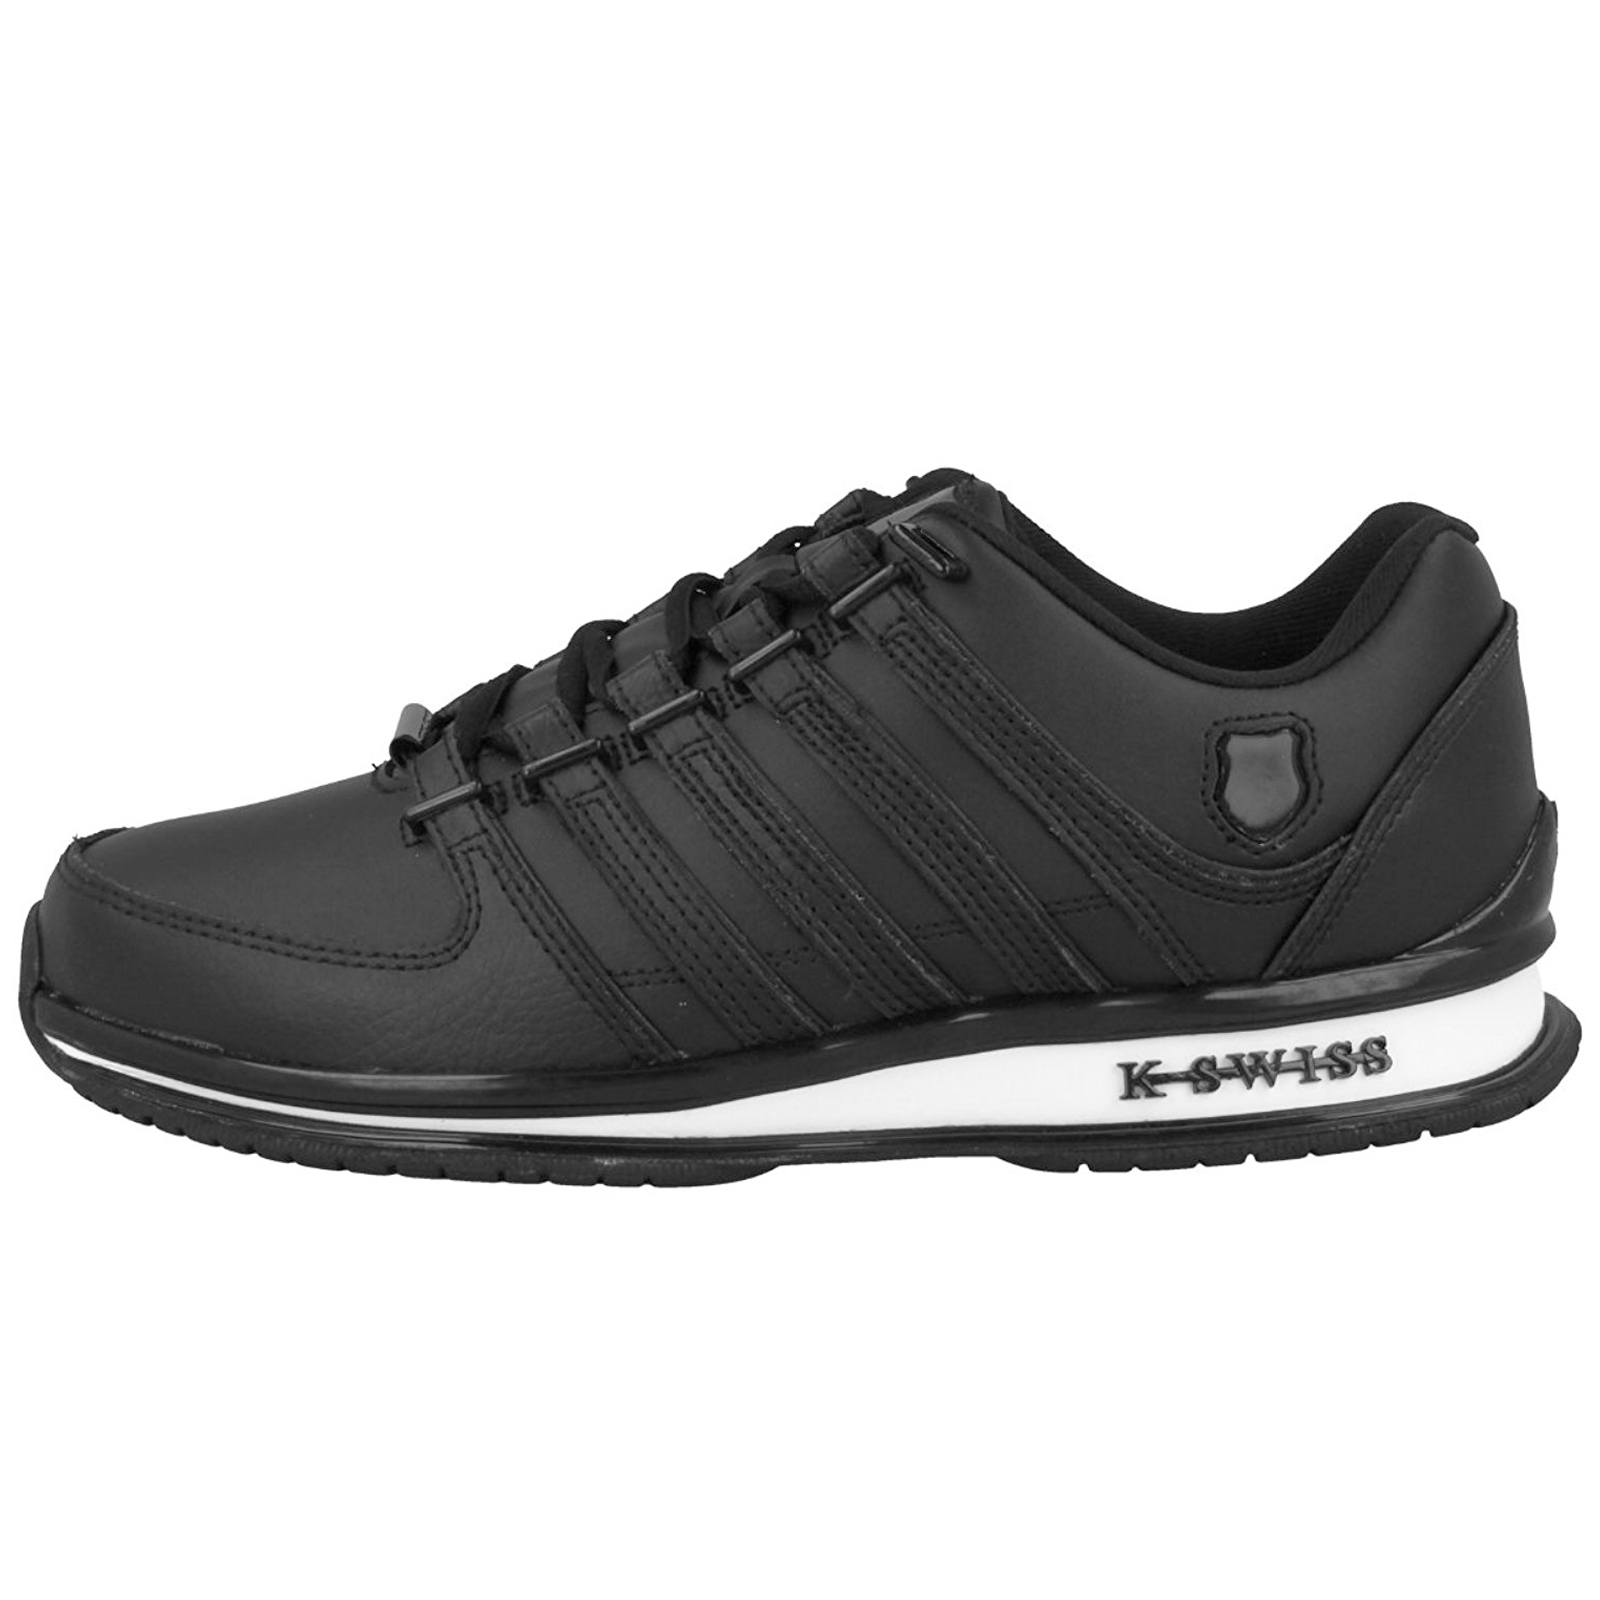 K-Swss  Iconic Uomo Rinzler SP Designer Iconic  Schuhes Limited Edition Lace Up Trainers 5d91a5